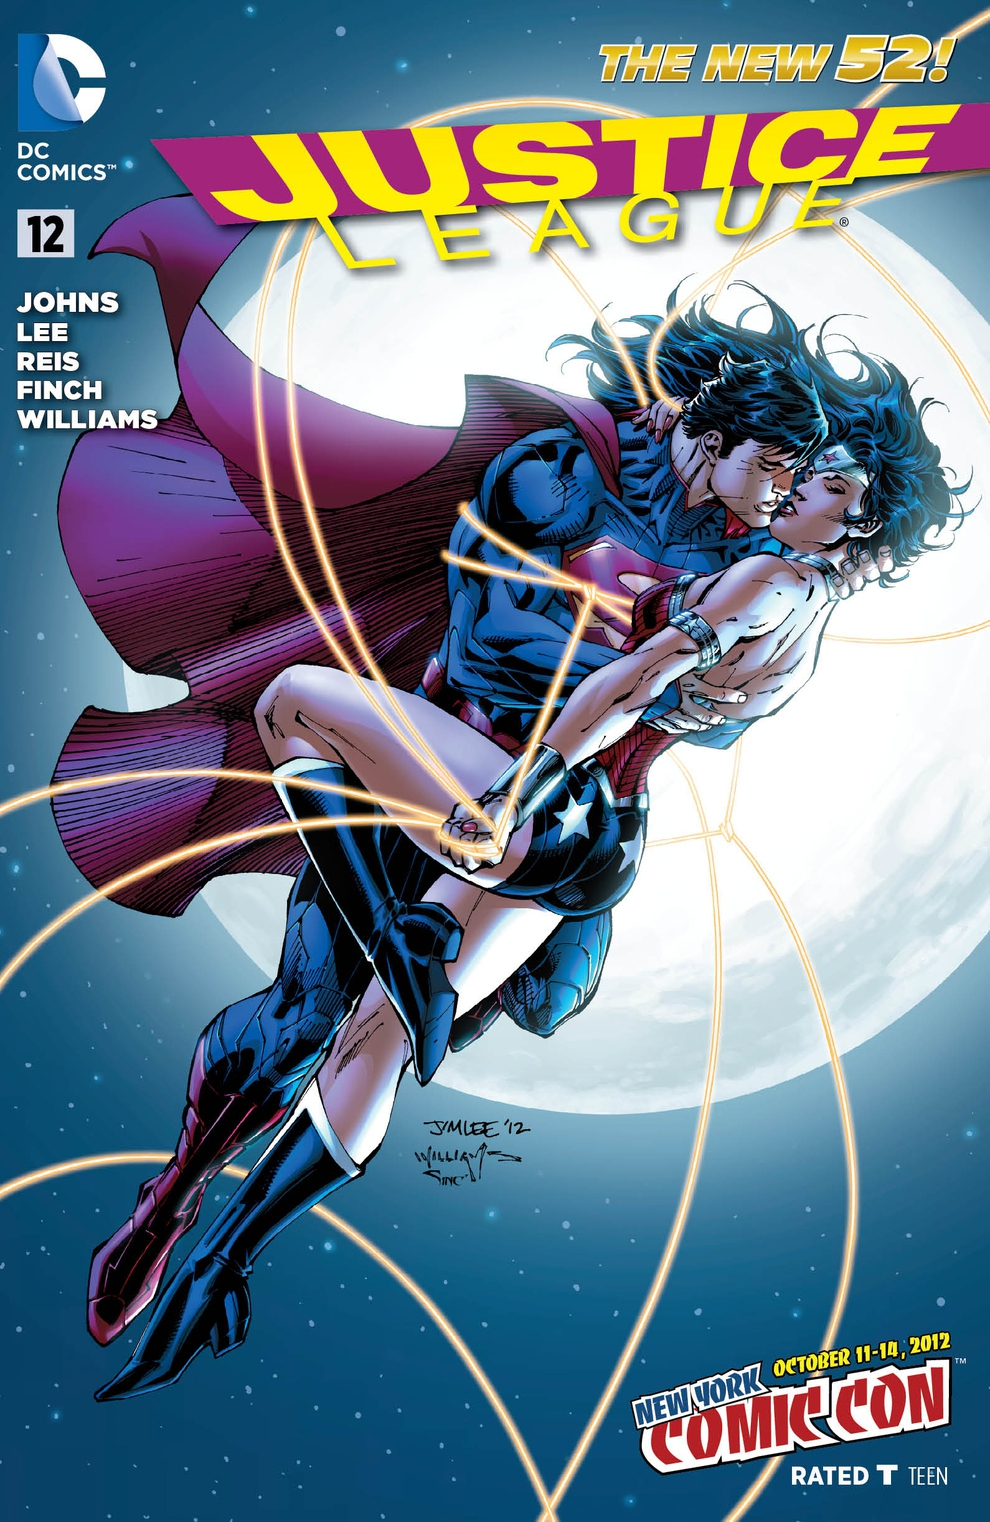 DC Comics Unveils NYCC Exclusive Covers от Kaye за 01 oct 2012